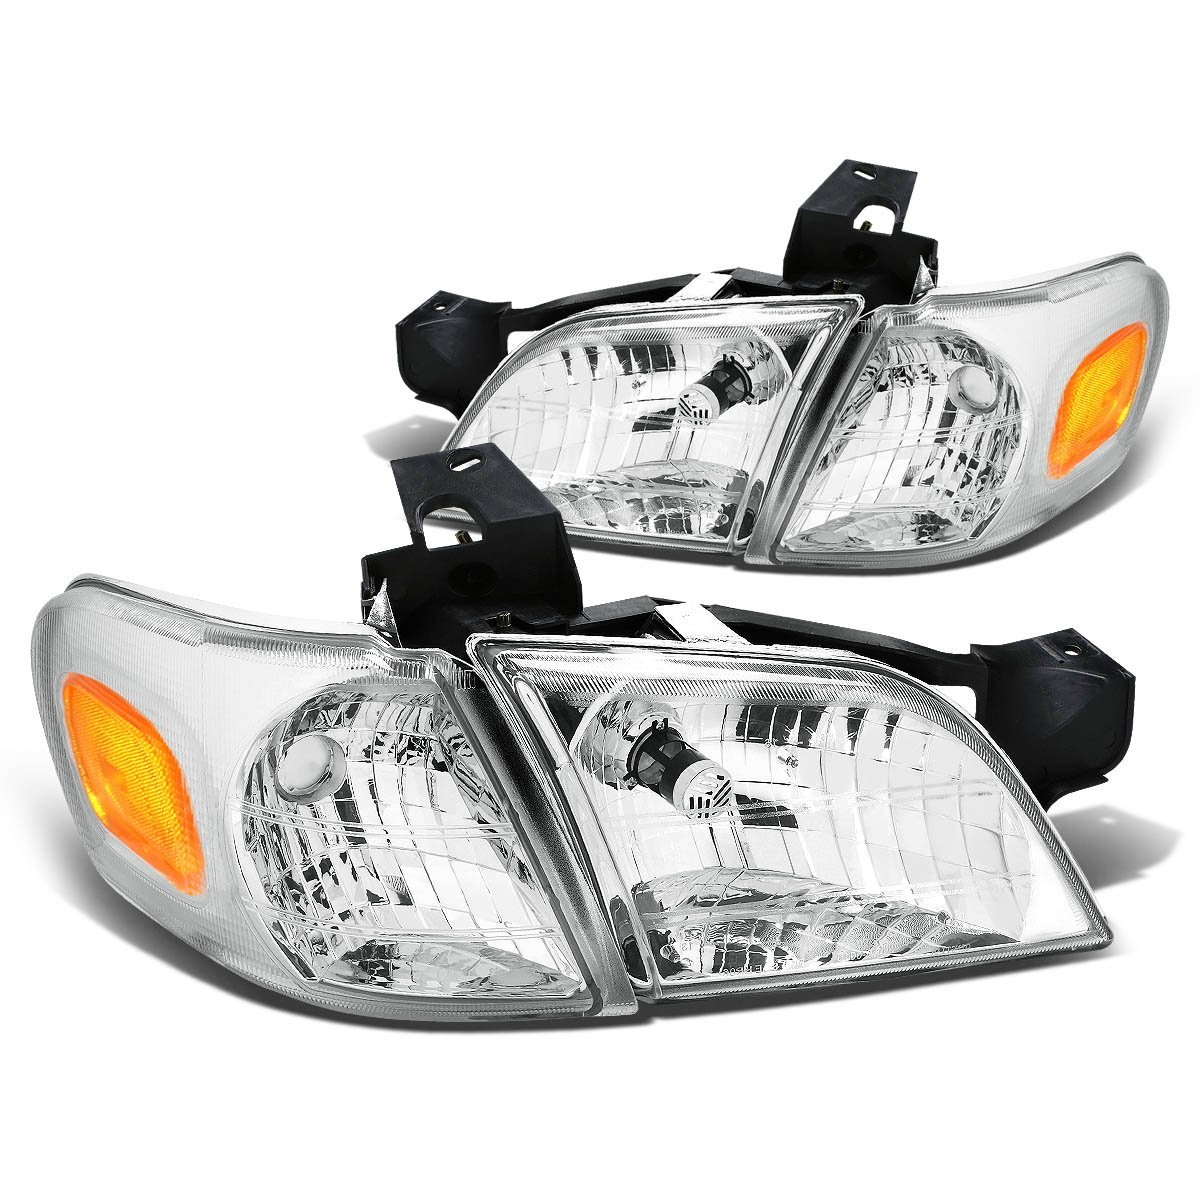 Chevy Venture Pontiac Montana Replacement Crystal Headlights Chrome Click To Enlarge